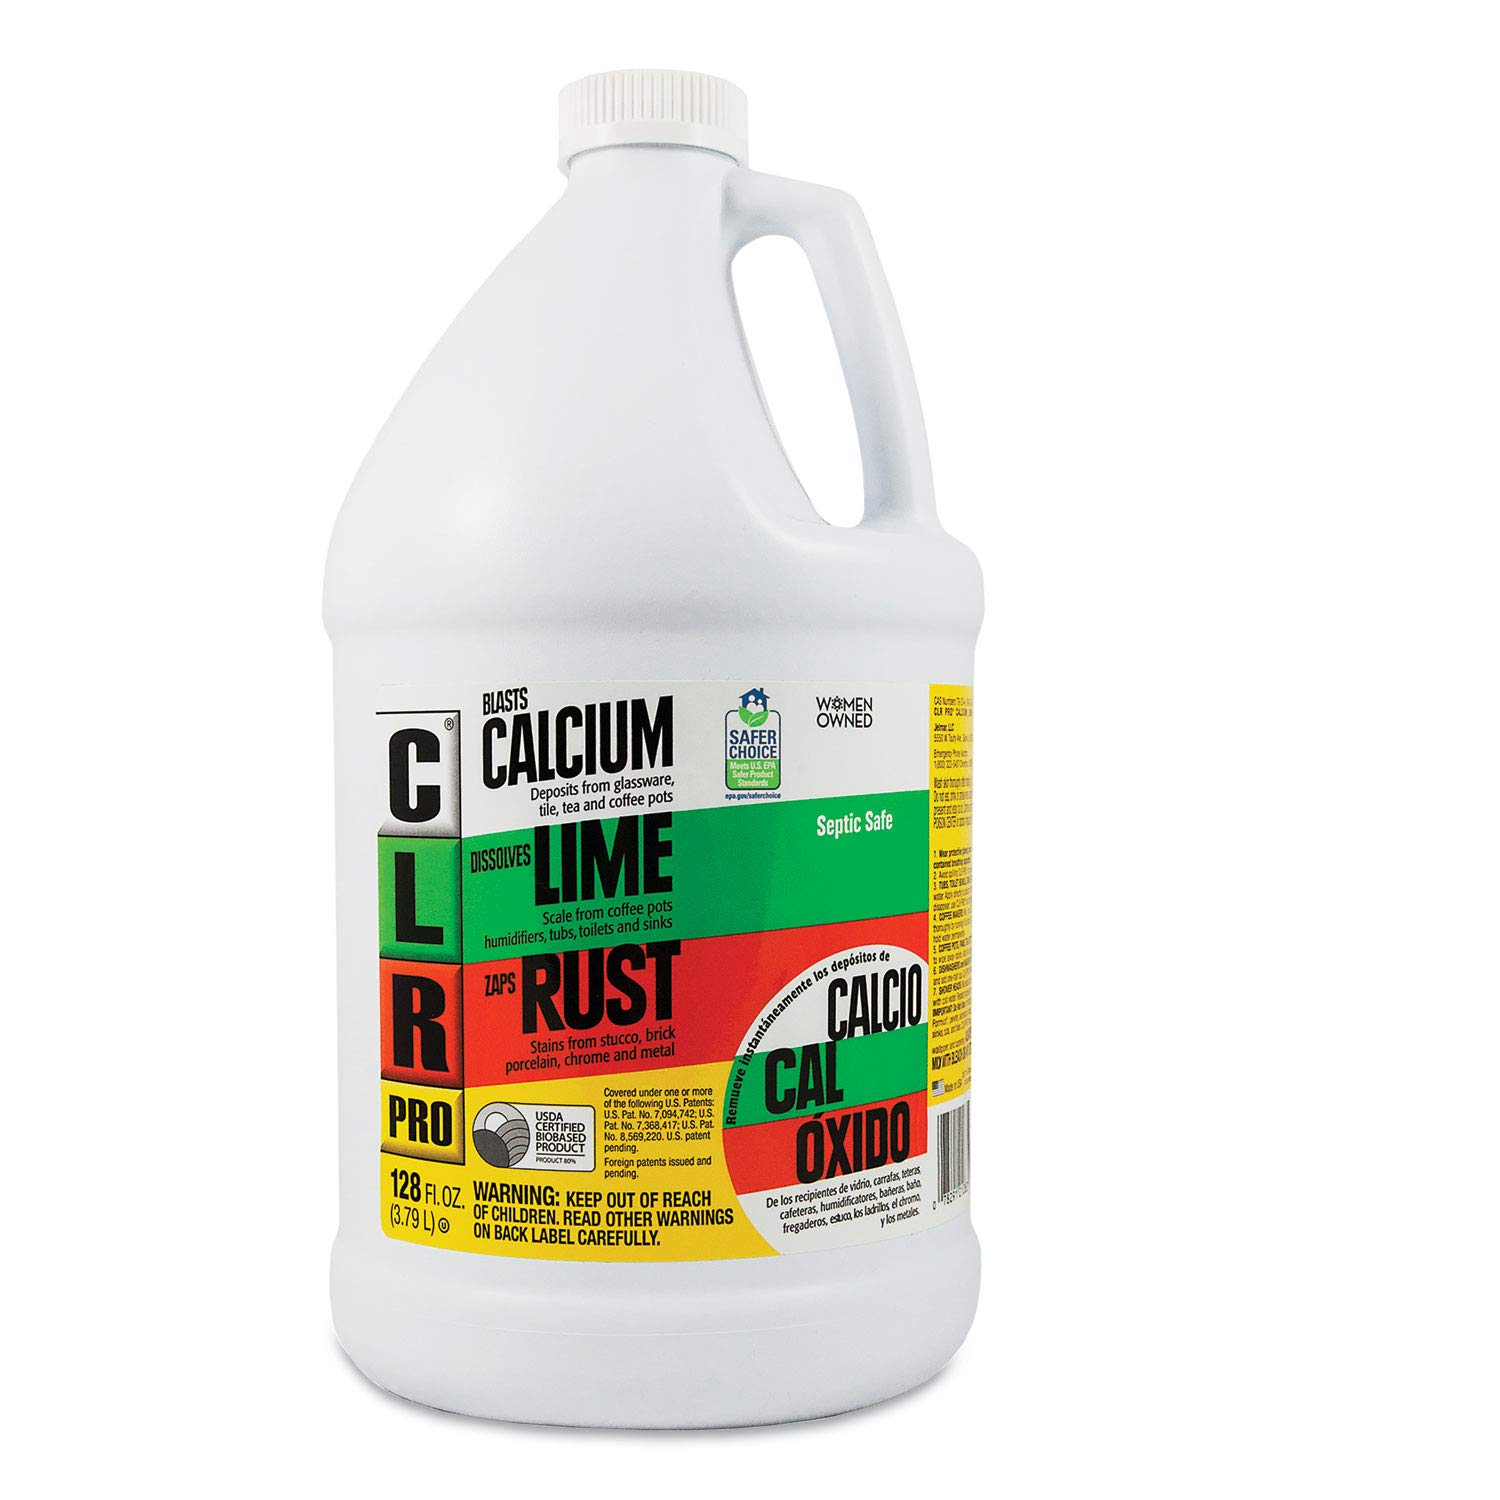 CLR Pro CL-4Pro Calcium, Lime and Rust Remover, 1 Gallon - Pack of 4 by Jelmar